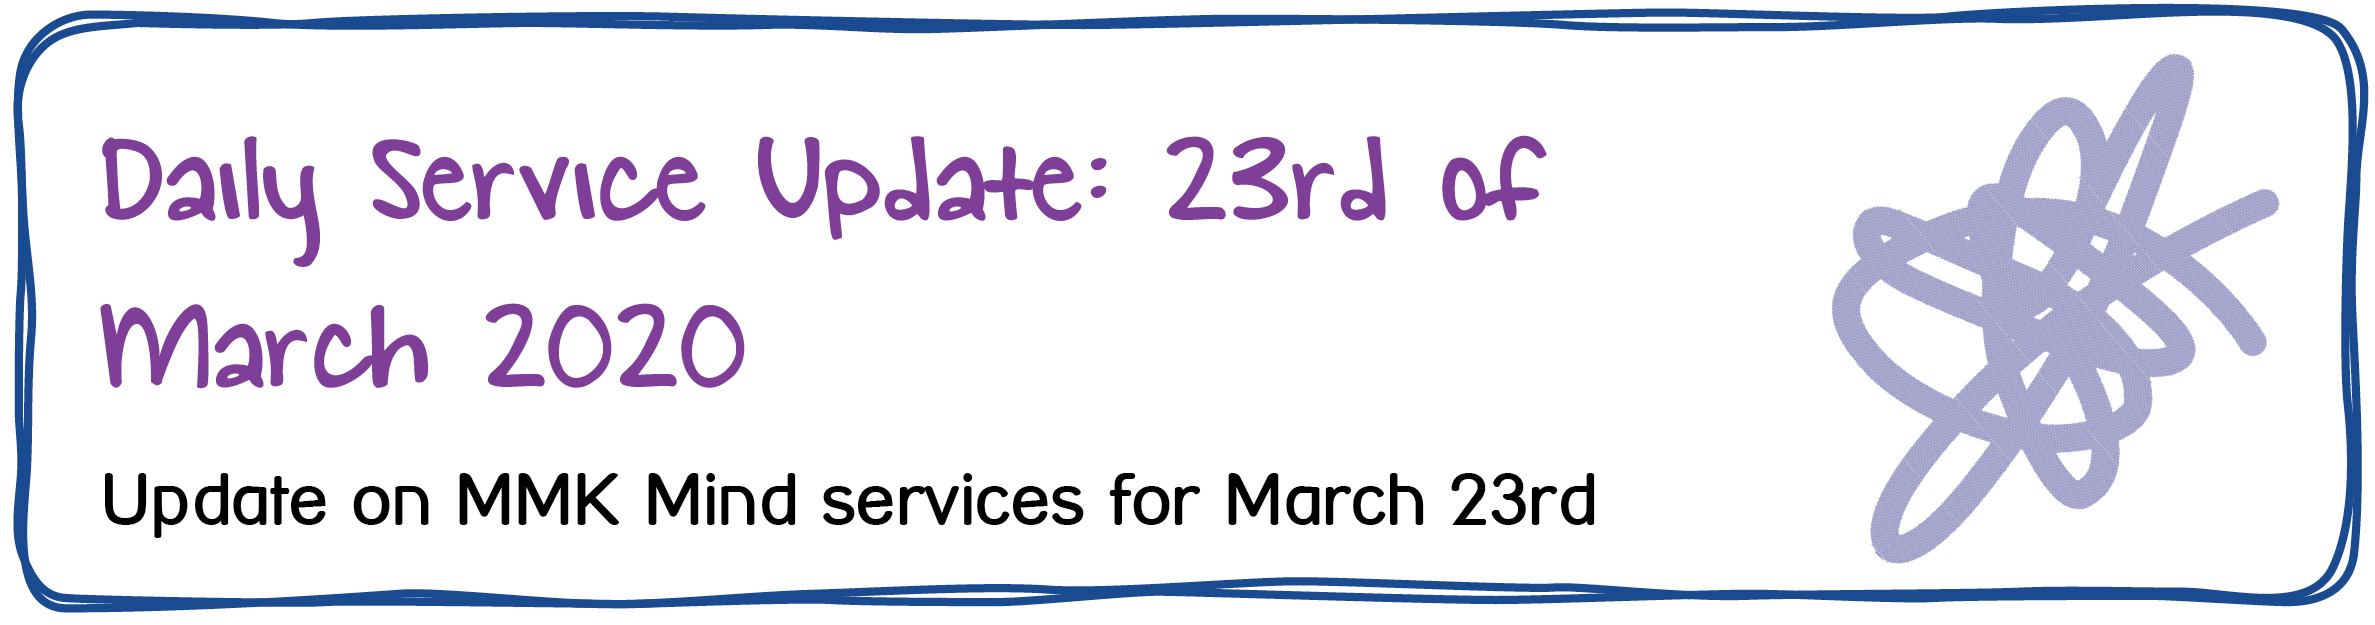 Daily Service Update: 23rd of March 2020. Update on MMK Mind services for March 23rd.